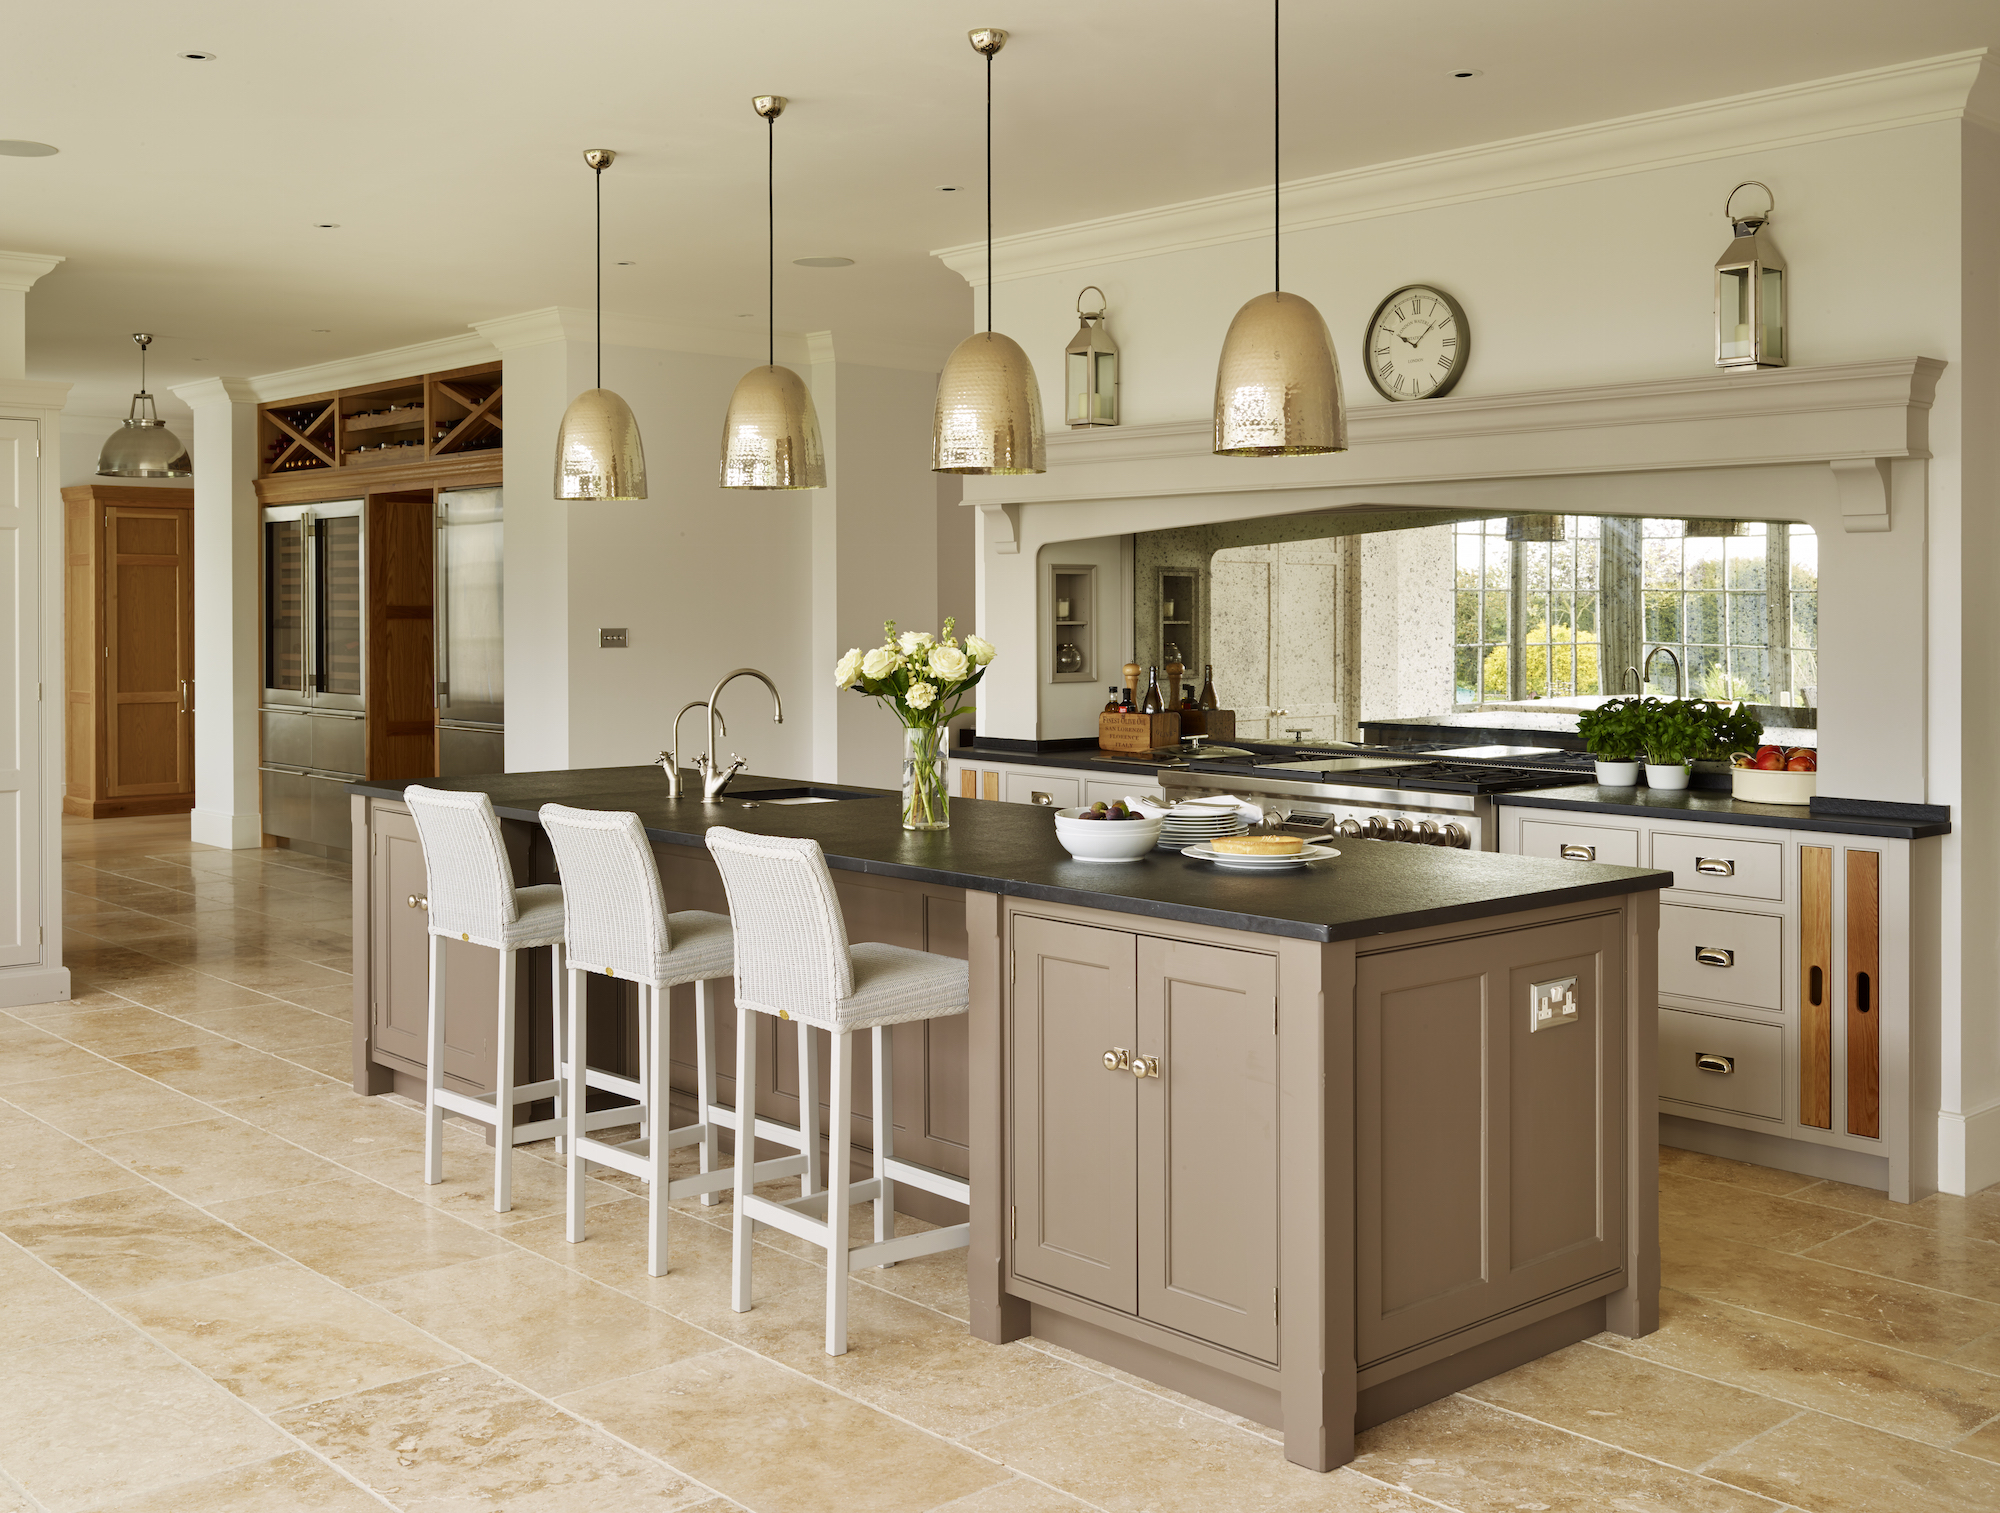 kitchens designs kitchen design ideas VGXSFLS